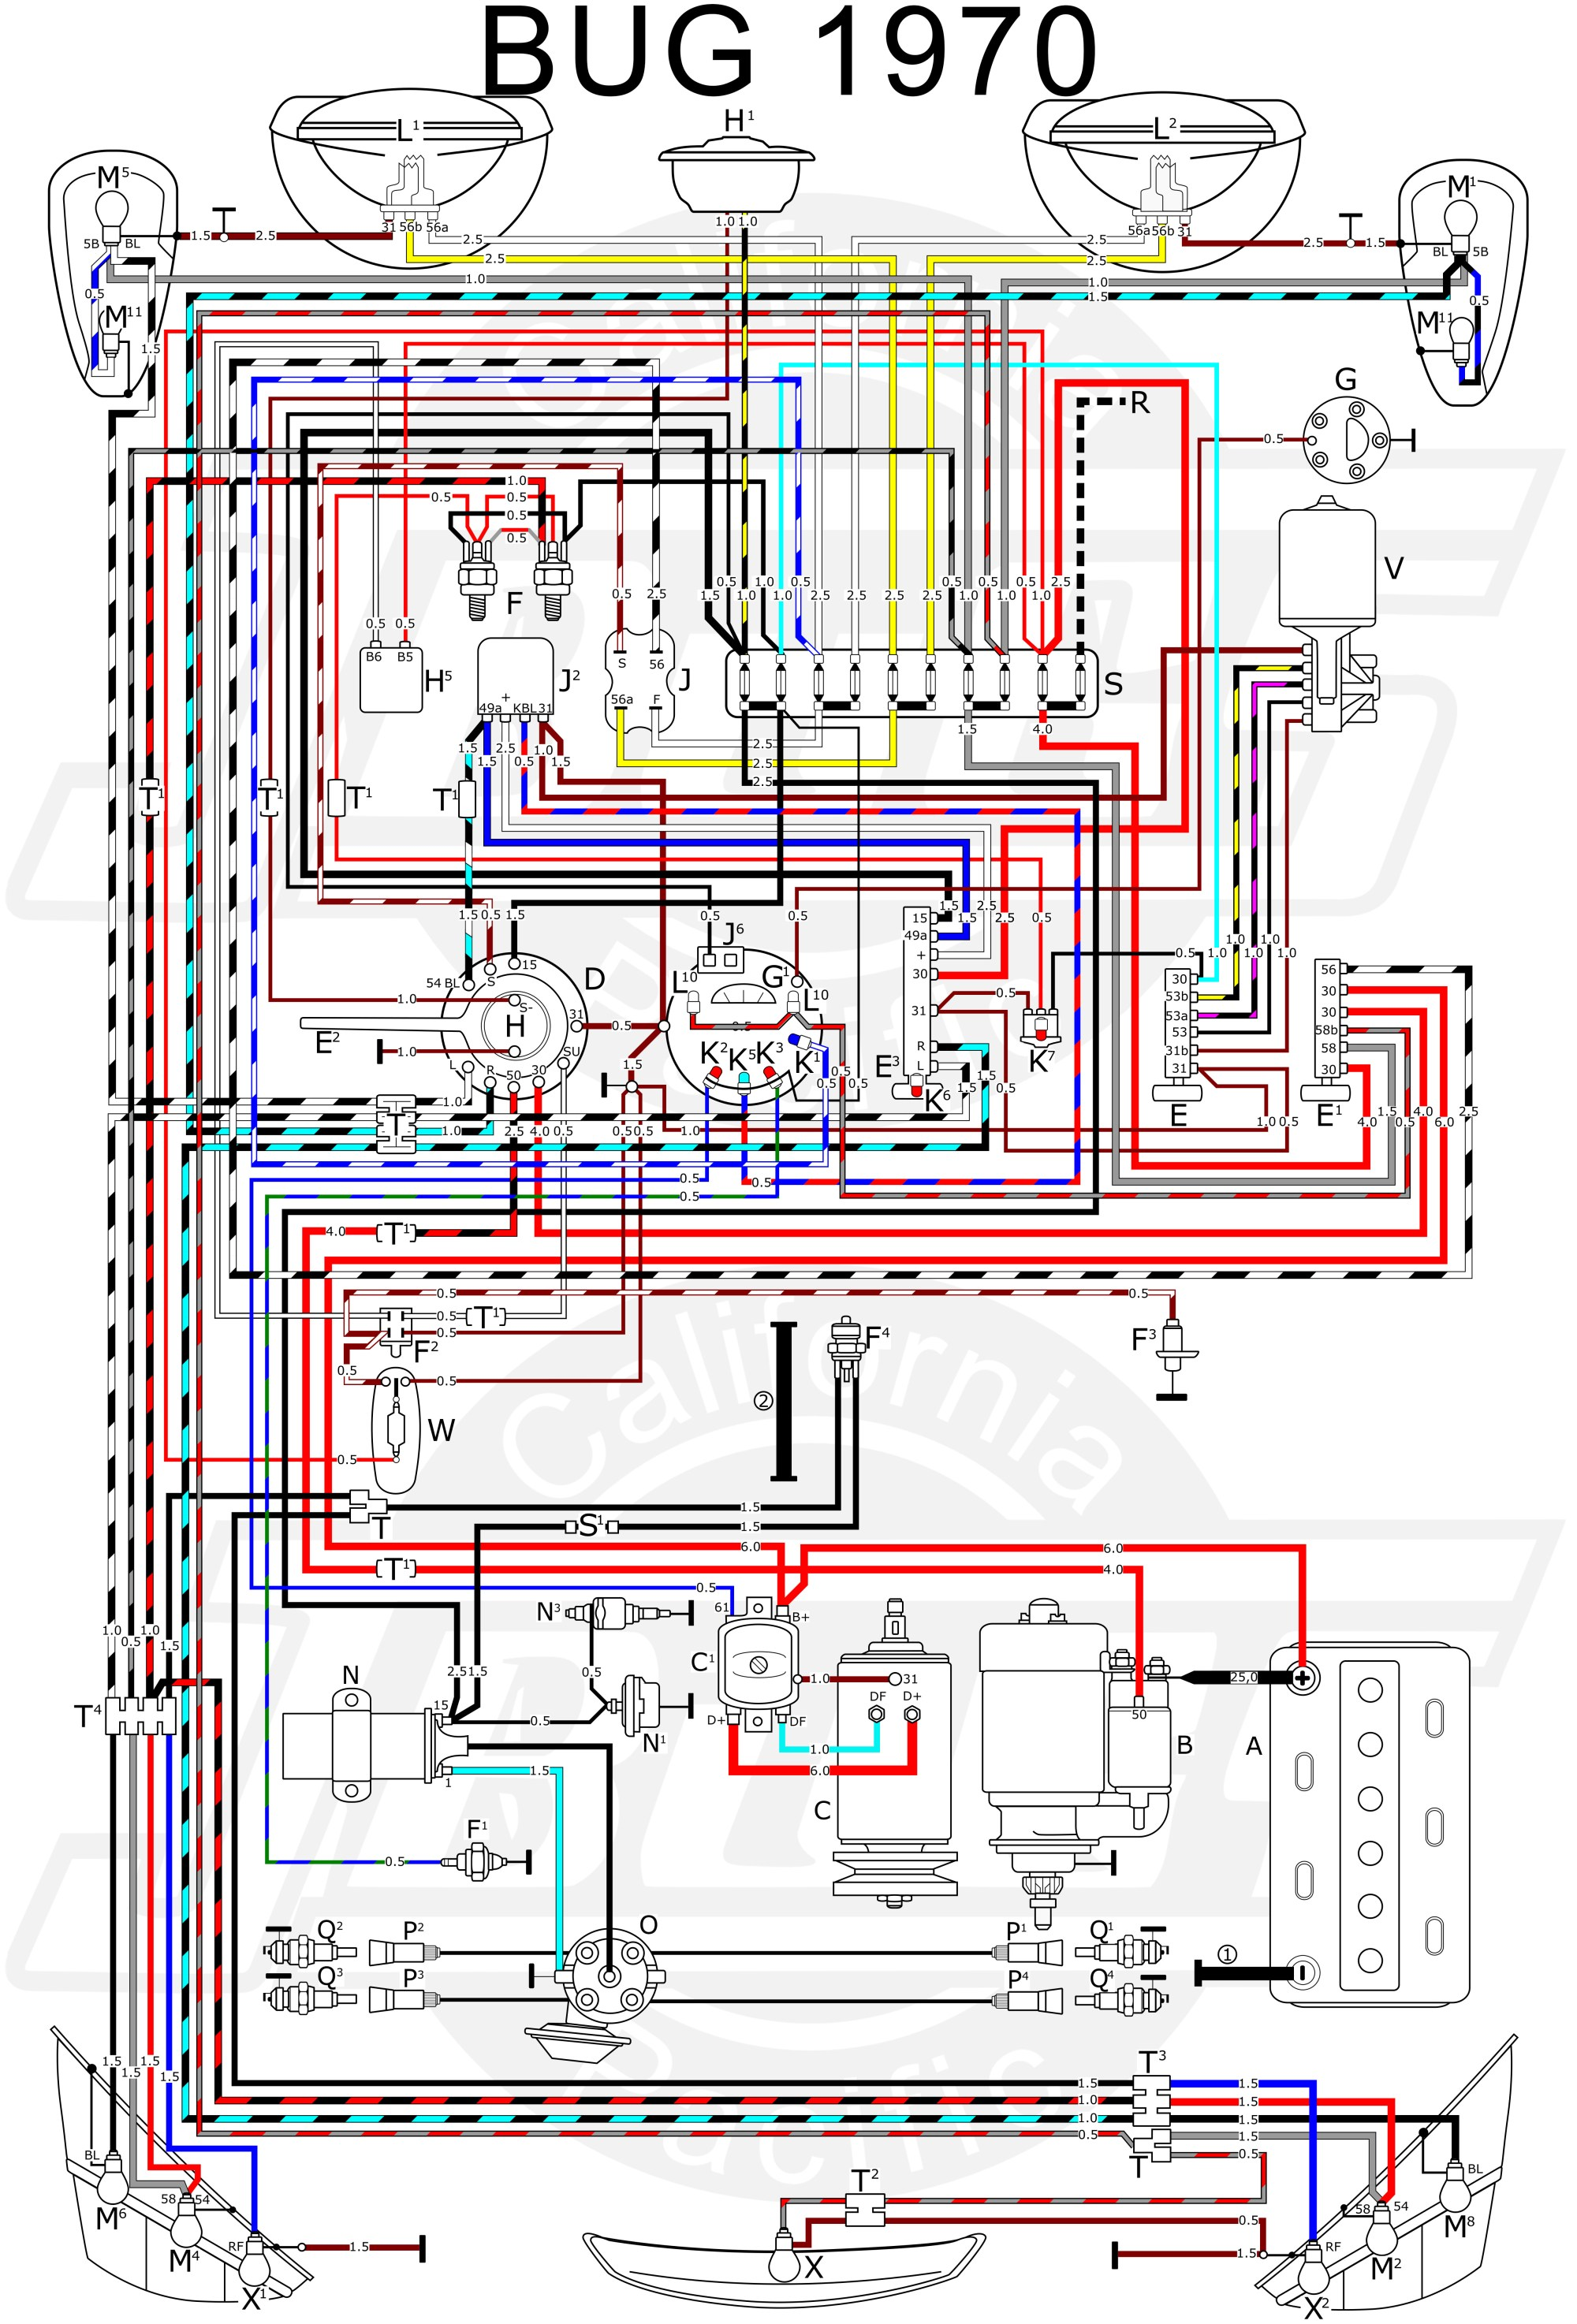 hight resolution of 2000 vw beetle wiring harness wiring diagram used 2000 vw beetle alternator wiring harness